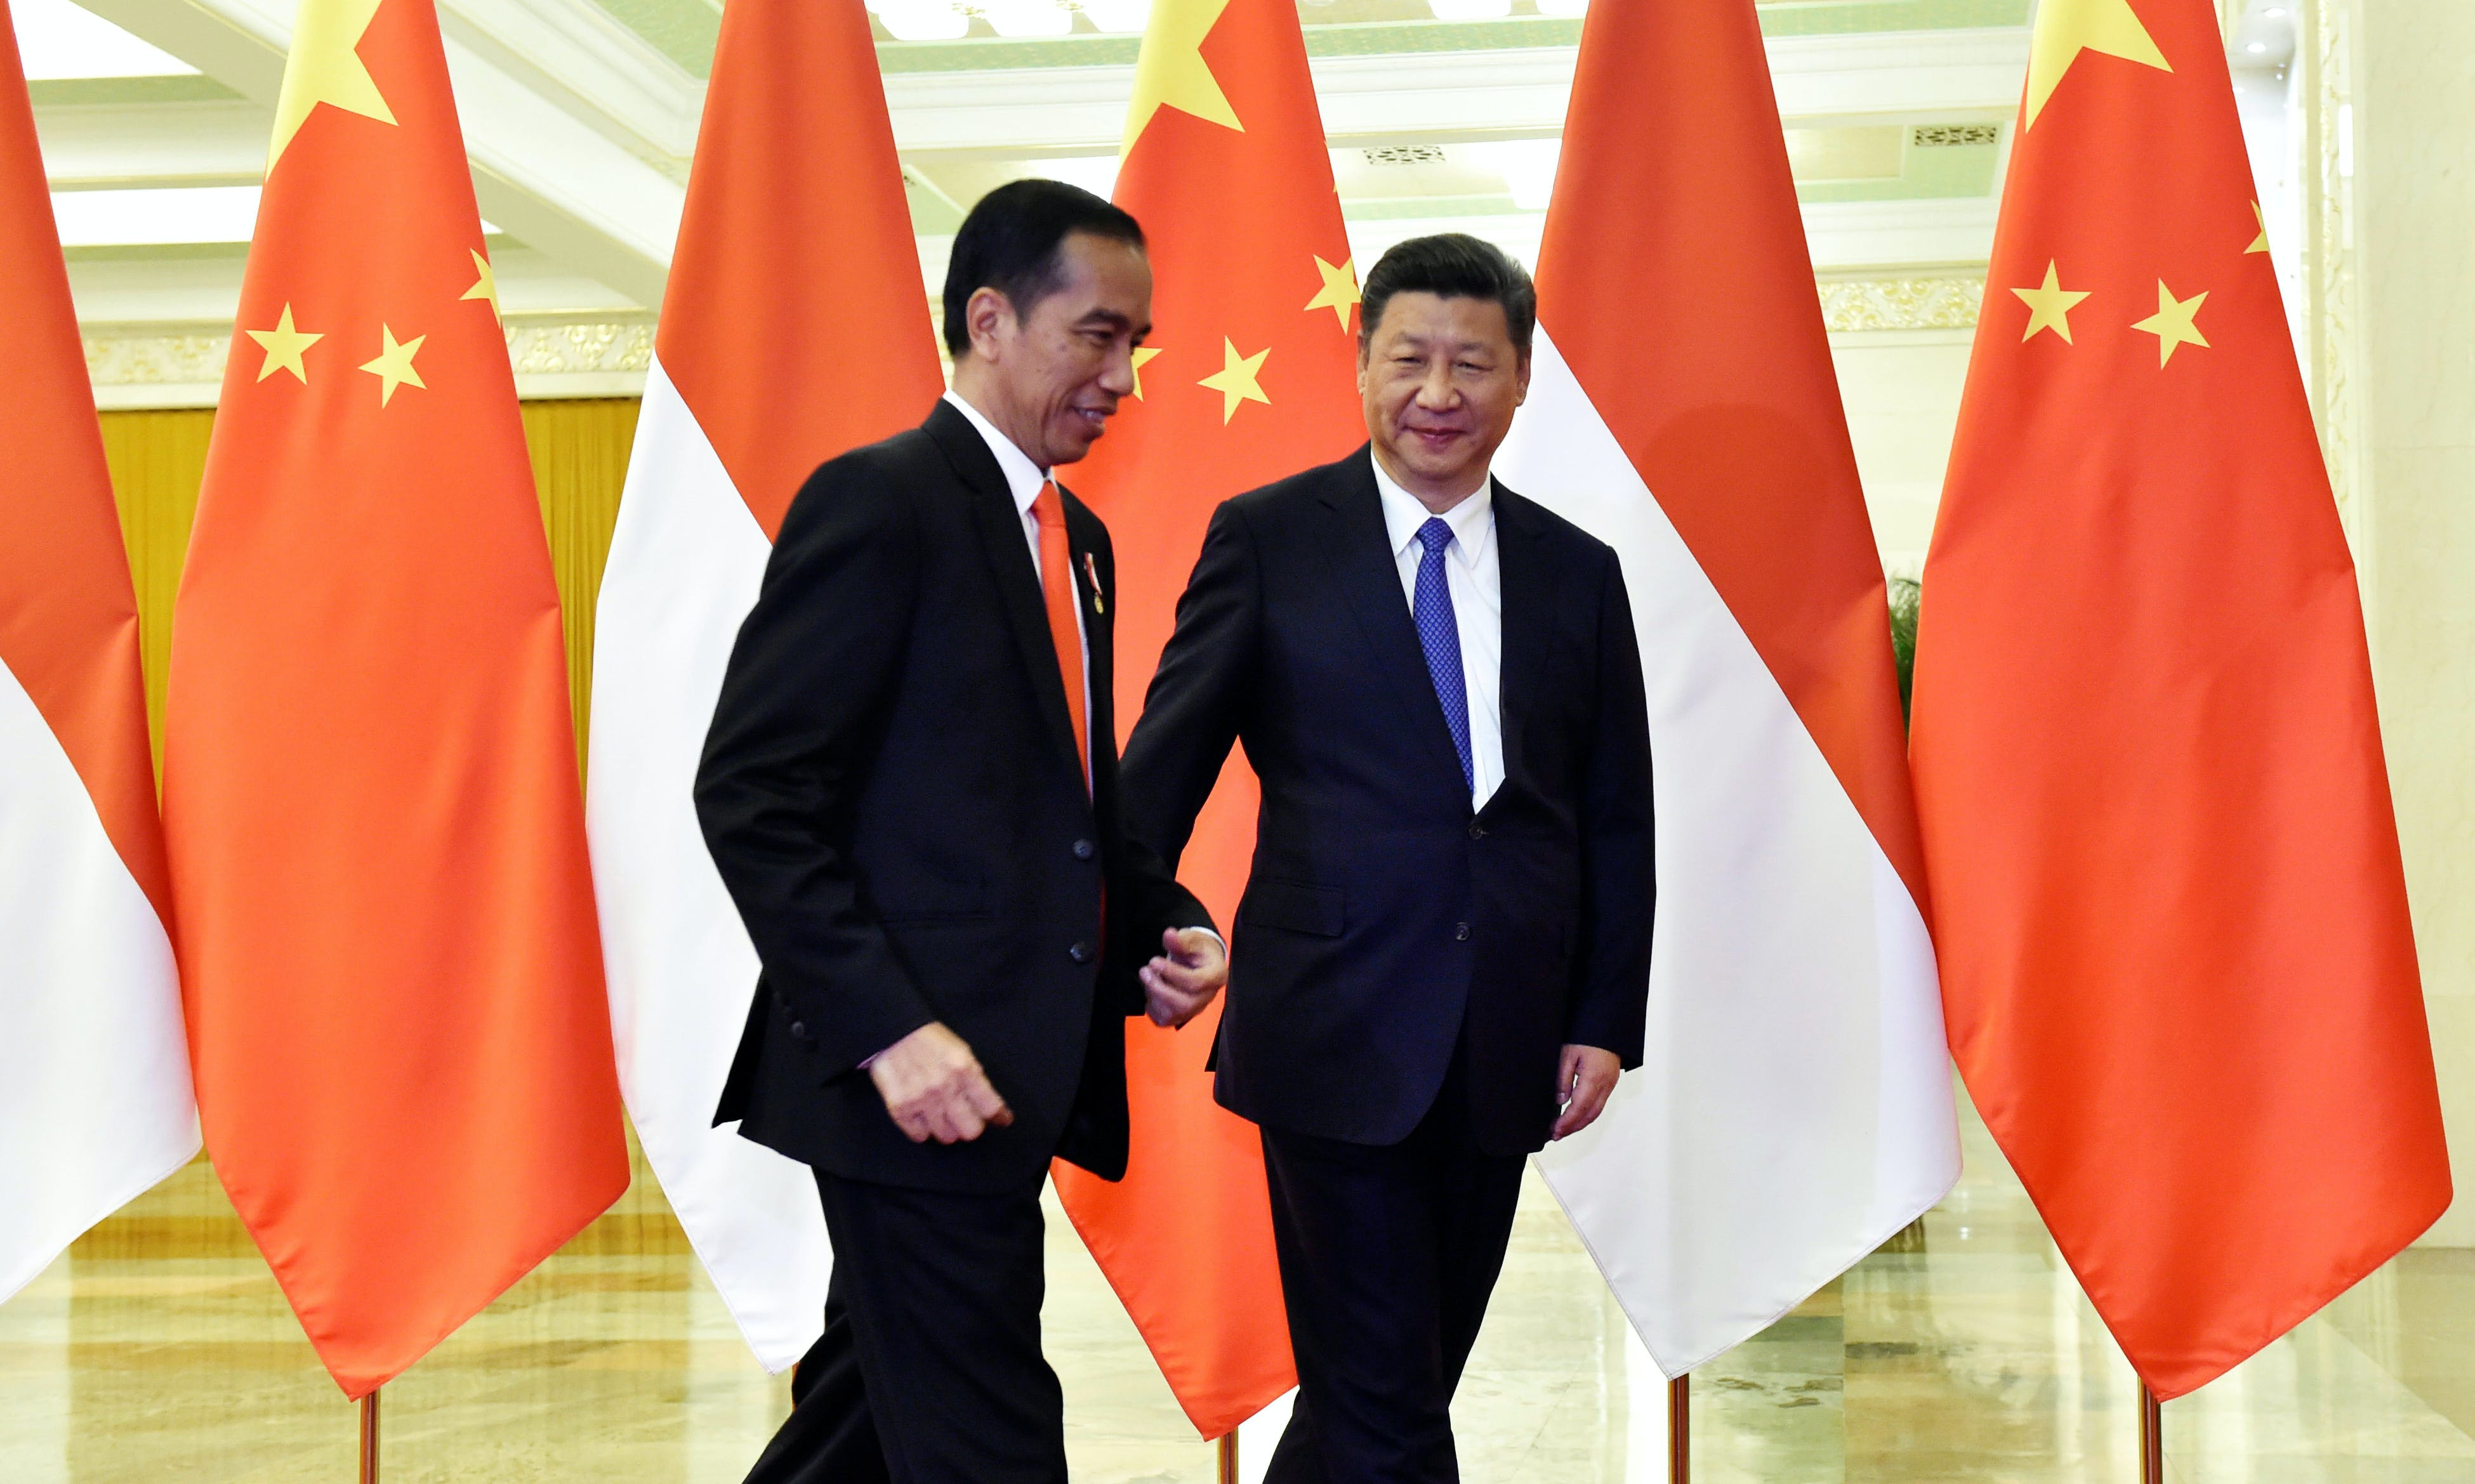 Xinjiang Remains an Enigma in Indonesia's Relationship With China